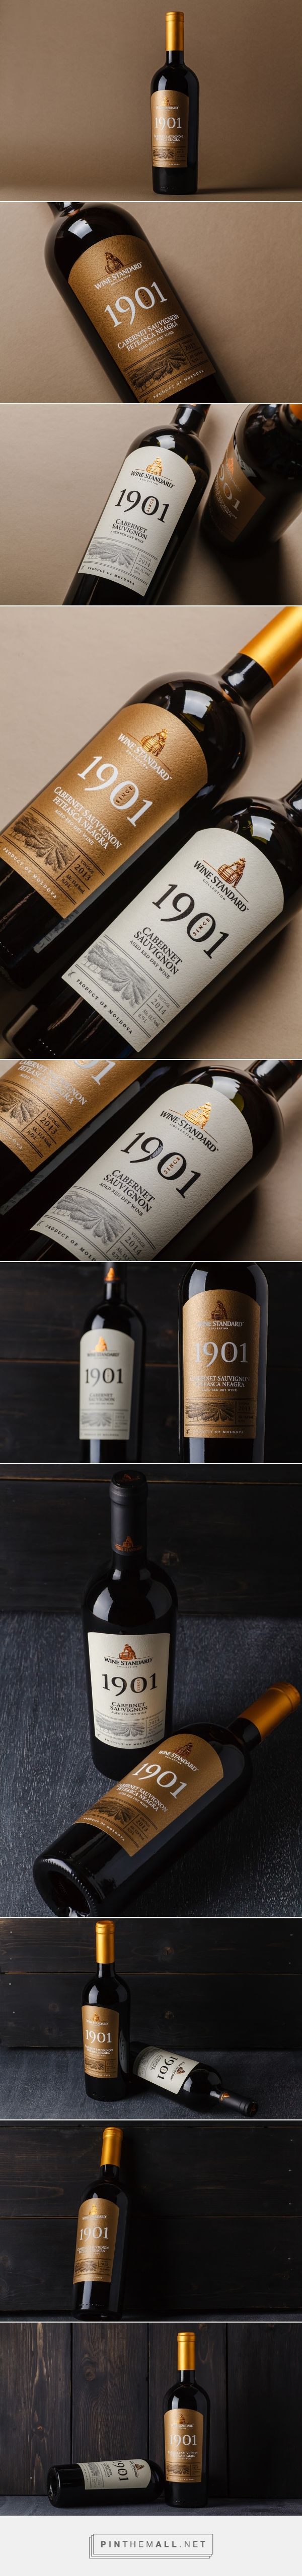 Wine Standard 1901 label design by 43'oz - Design Studio - http://www.packagingoftheworld.com/2017/01/wine-standard-1901.html